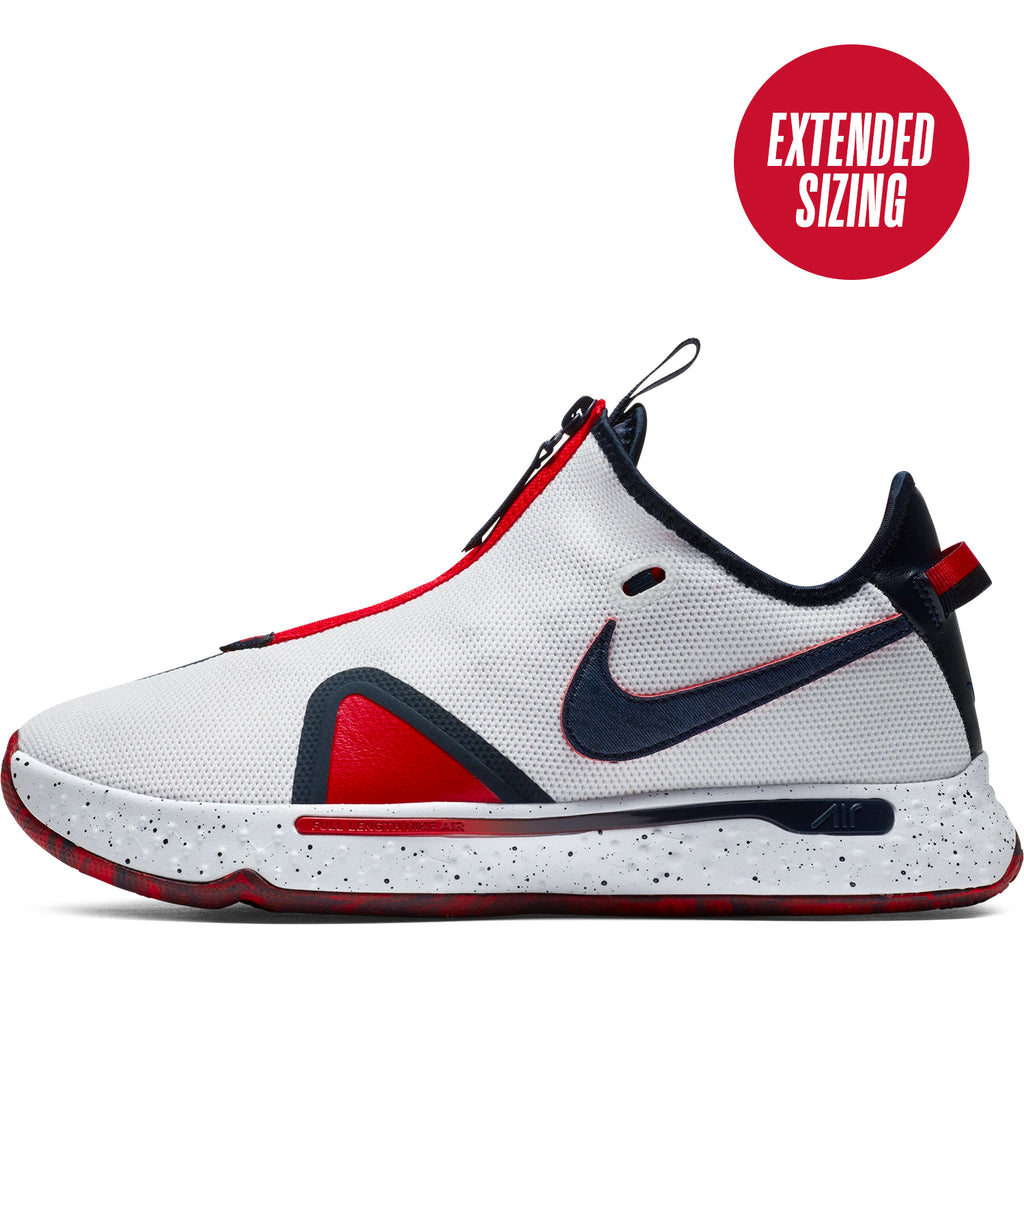 PG 4 EP White/Obsidian-University Red